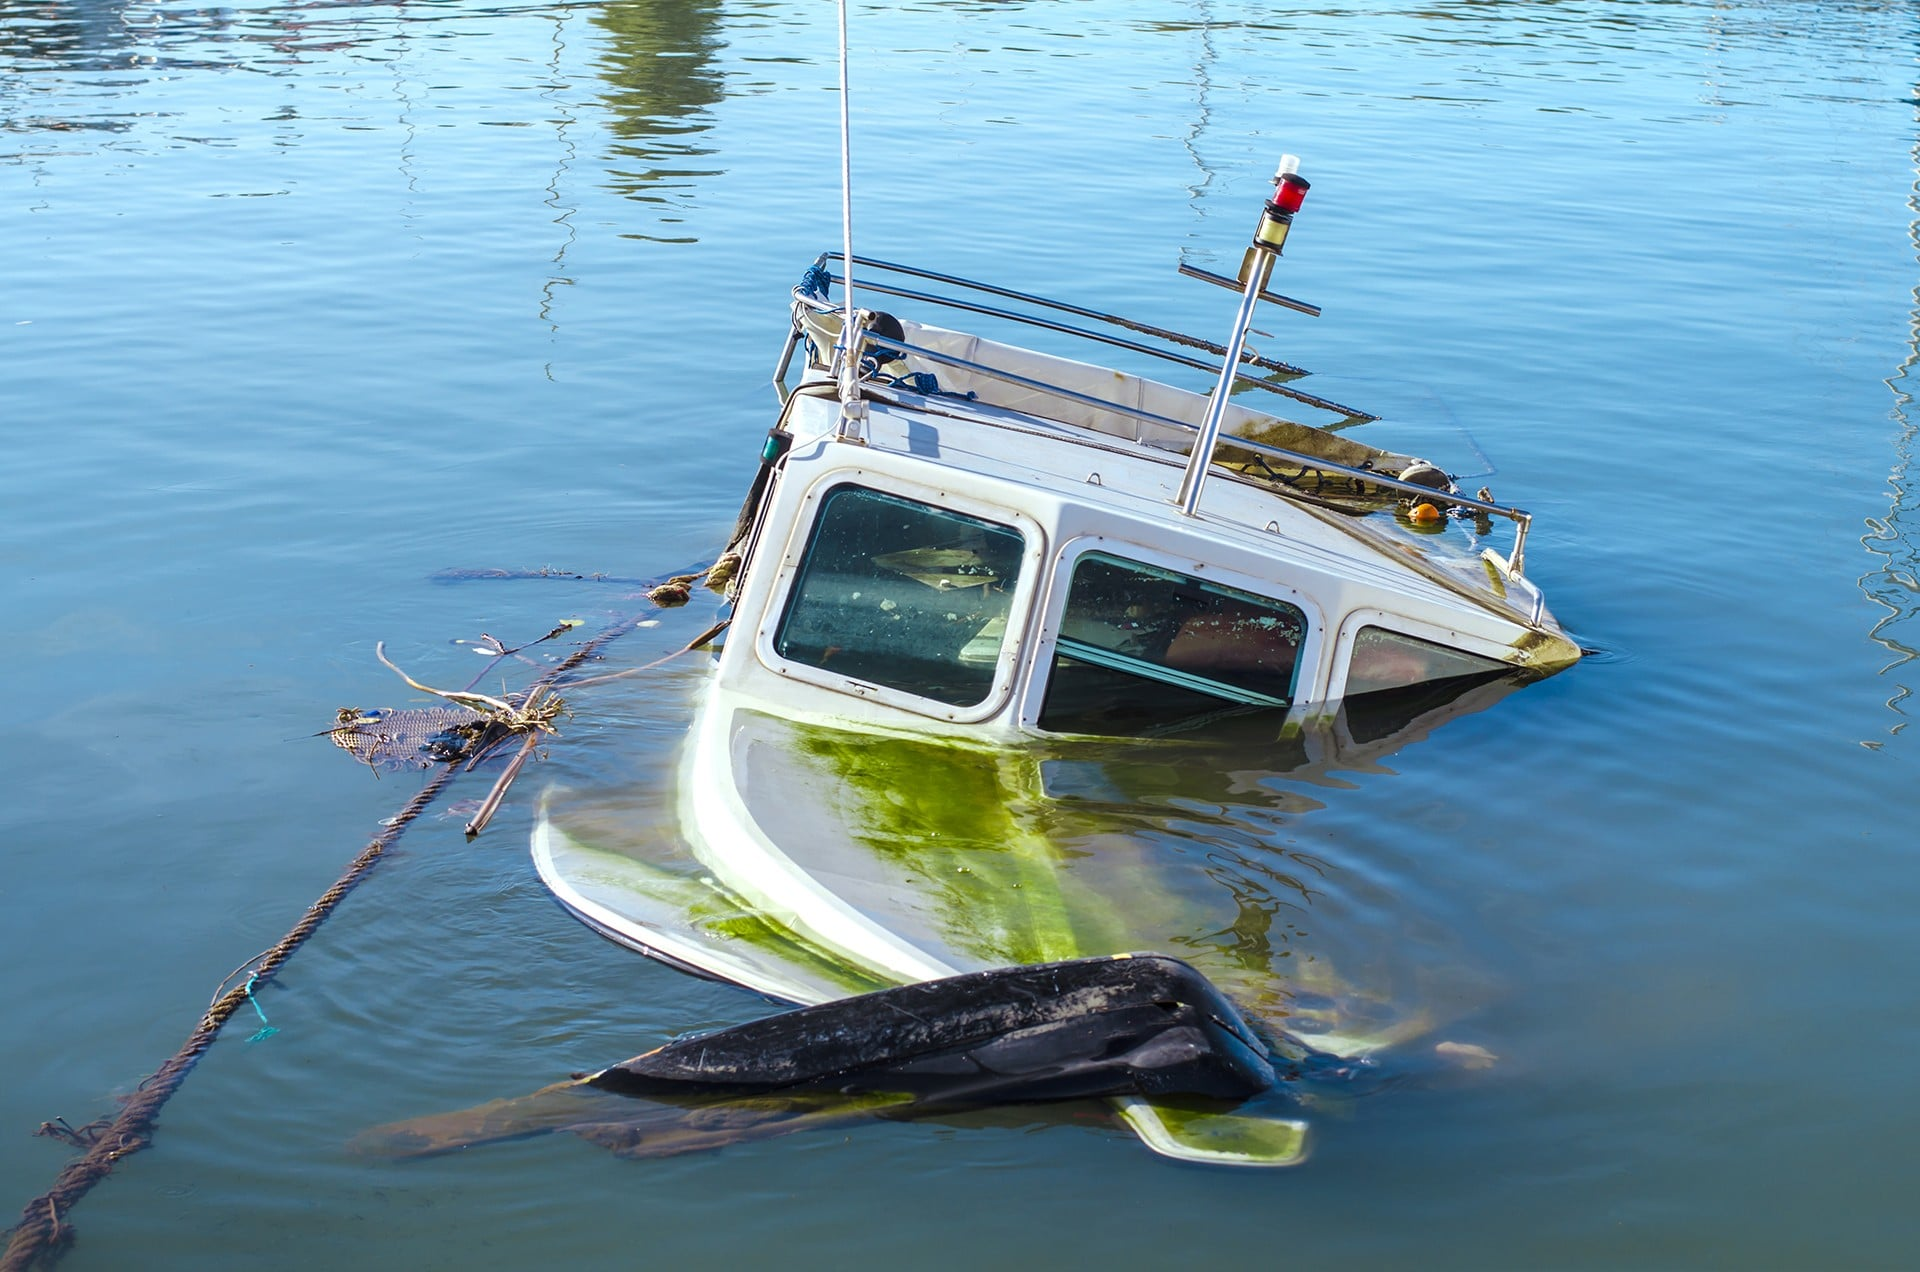 boat-accident-taylor-martino-personal-injury-lawyer